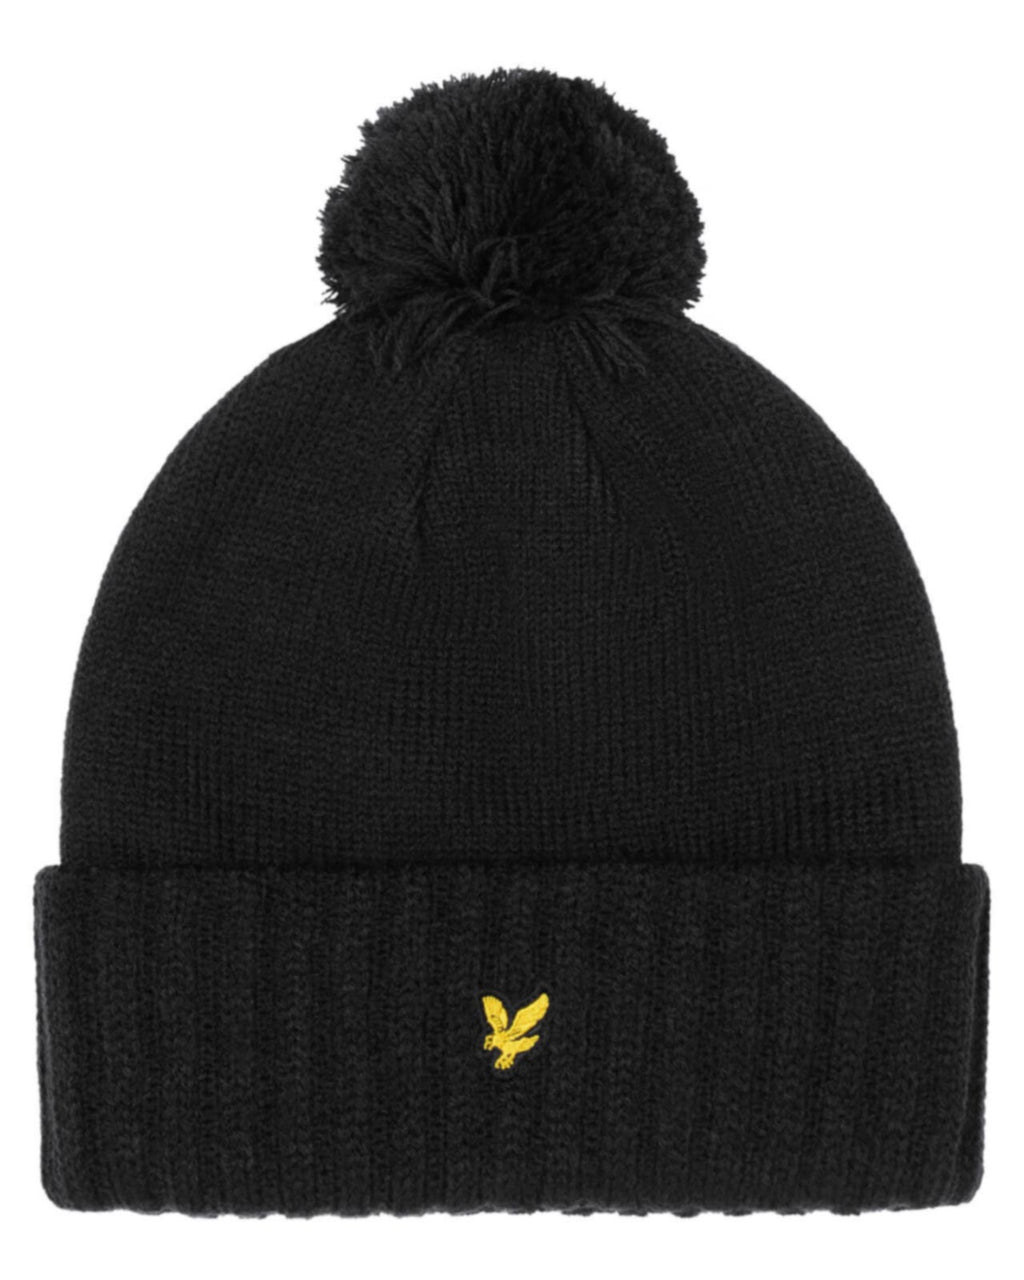 Lyle & Scott Bobble Beanie Hat	True Black